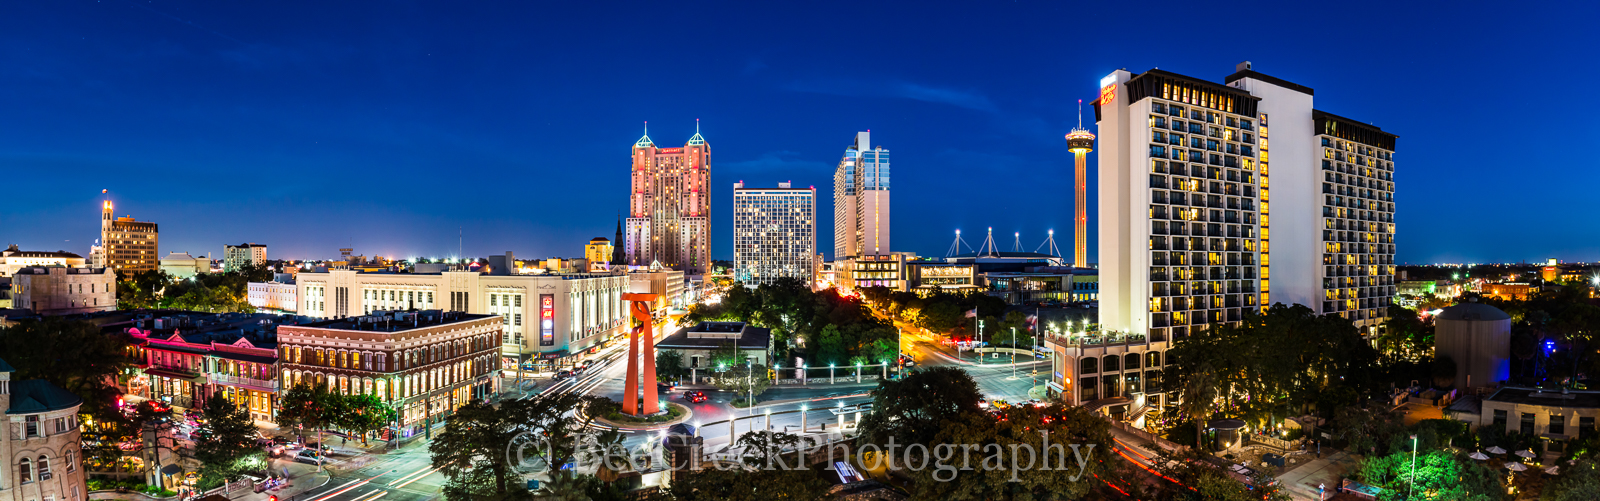 Grand Hyatt, Hilton, Marriott, San Antonio, Tod Grubbs, Torch or Friendship, Tower of Americas, beecreekphotography, city, cityscape, cityscapes, destination, downtown, night, pano, panorama, riiverwa